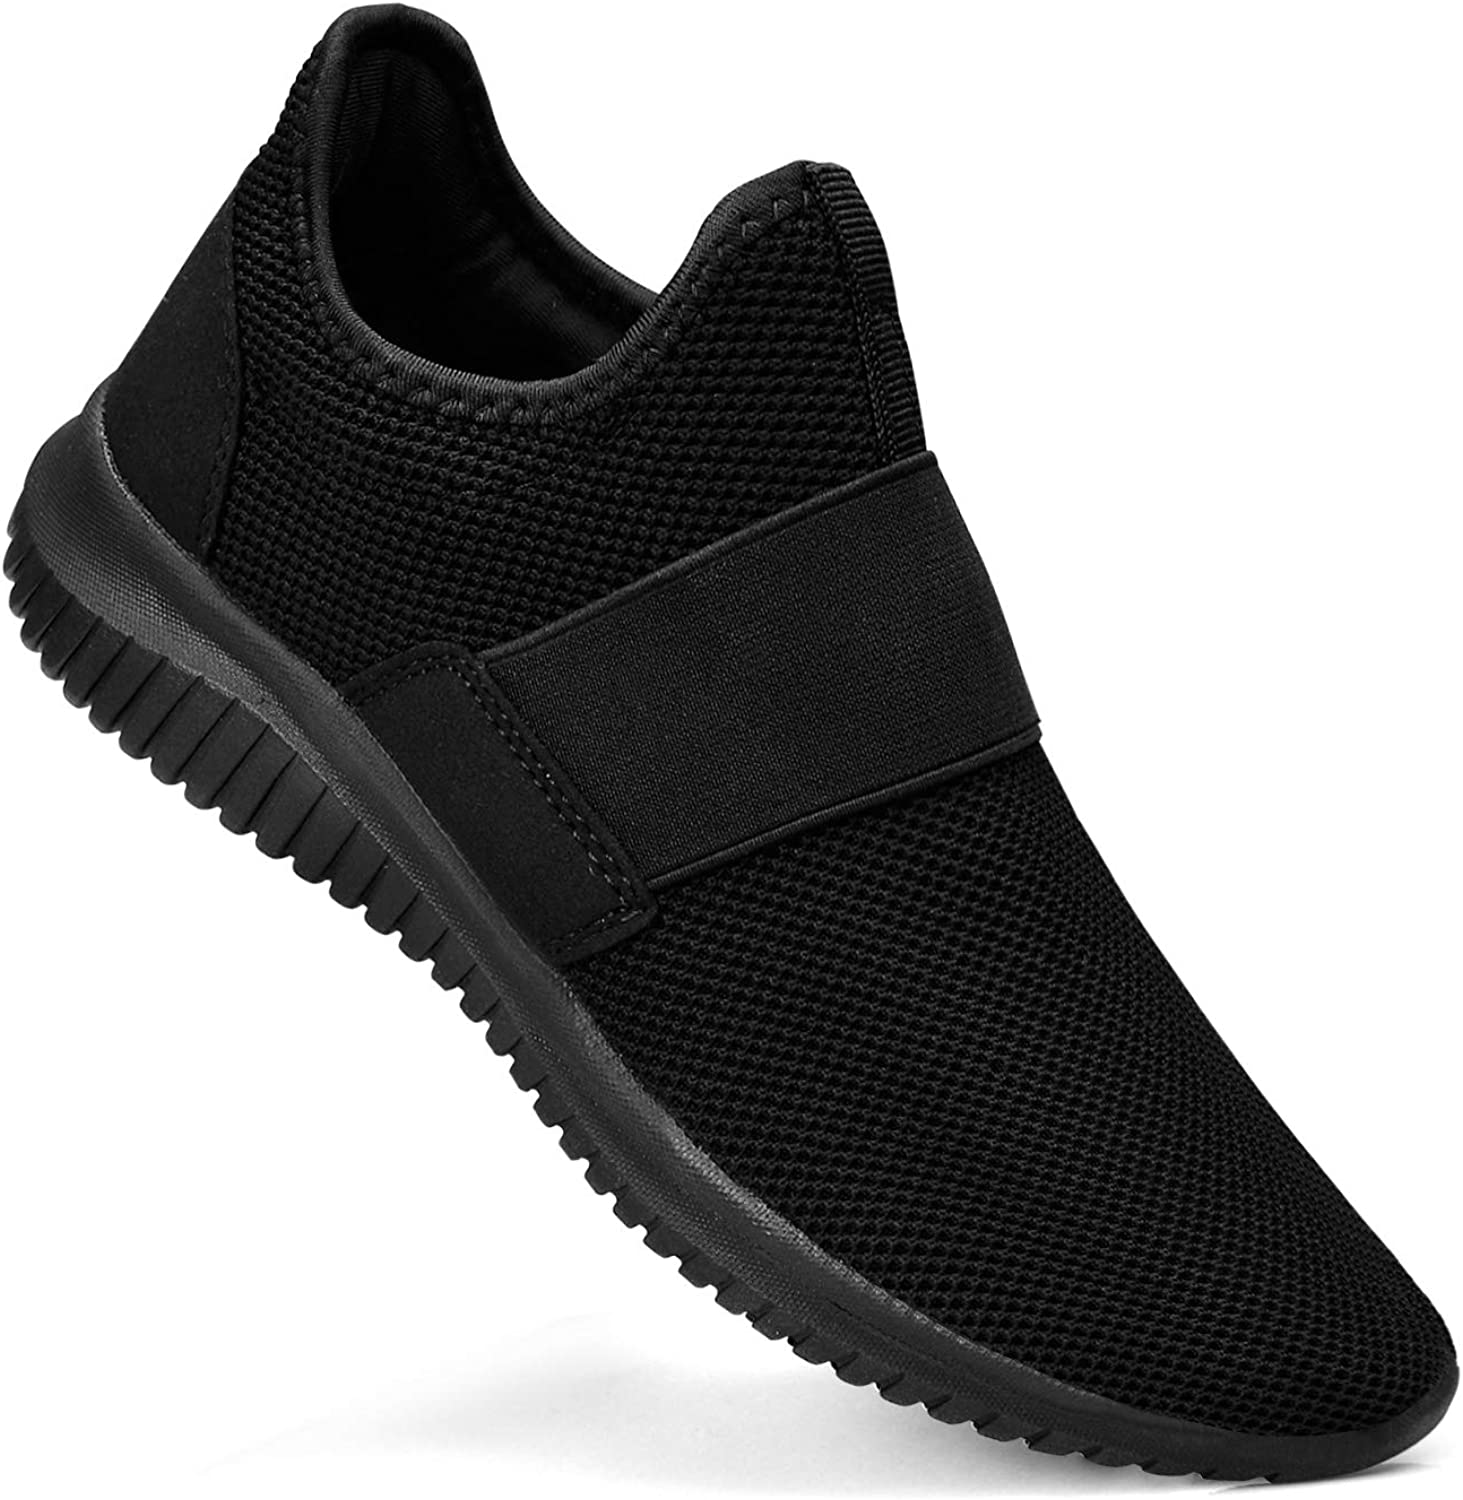 Troadlop Mens Sneakers Slip on Gym Workout shoes